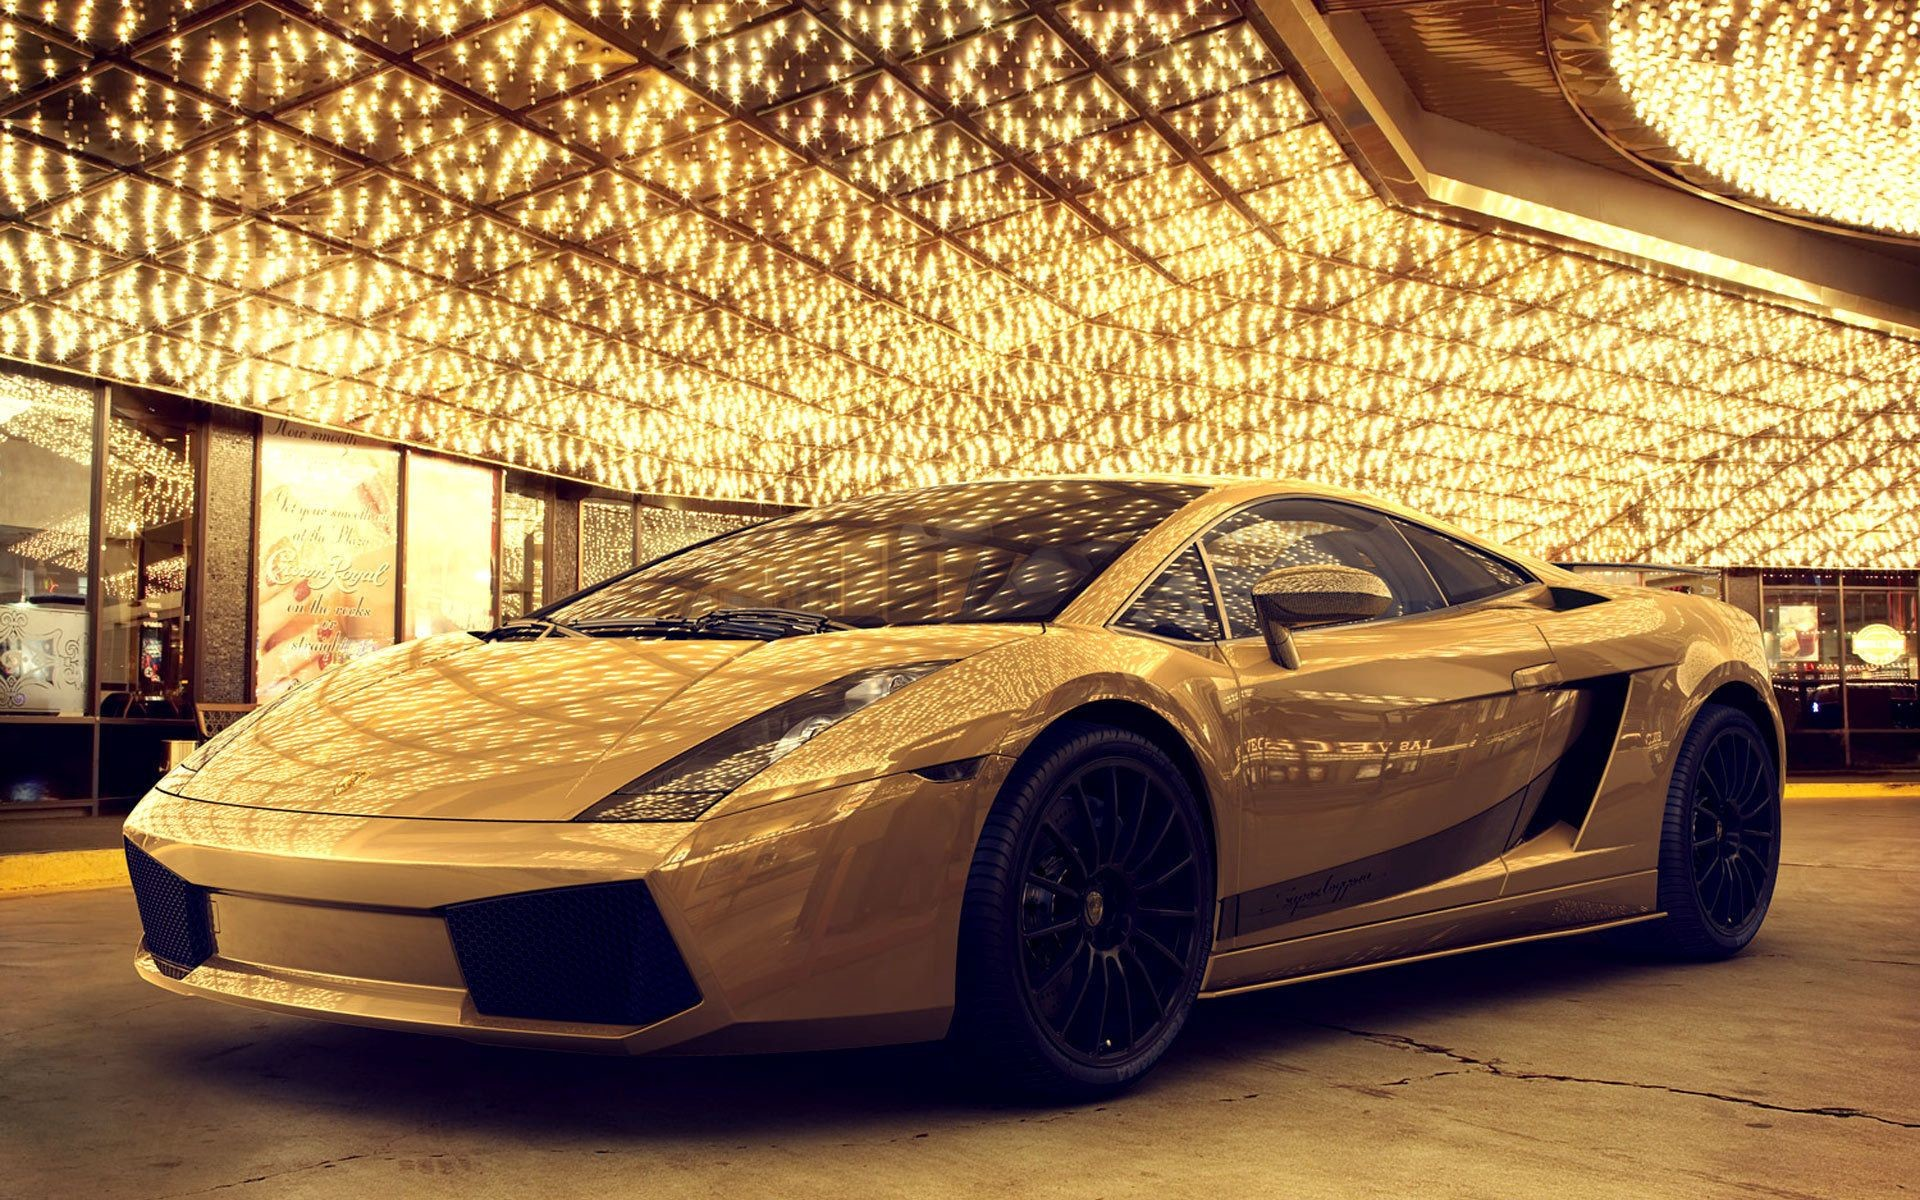 Beautiful HD Wallpapers very attractive.Top HD Wallpapers very wonderful. Gold Plated Lamborghini Aventador